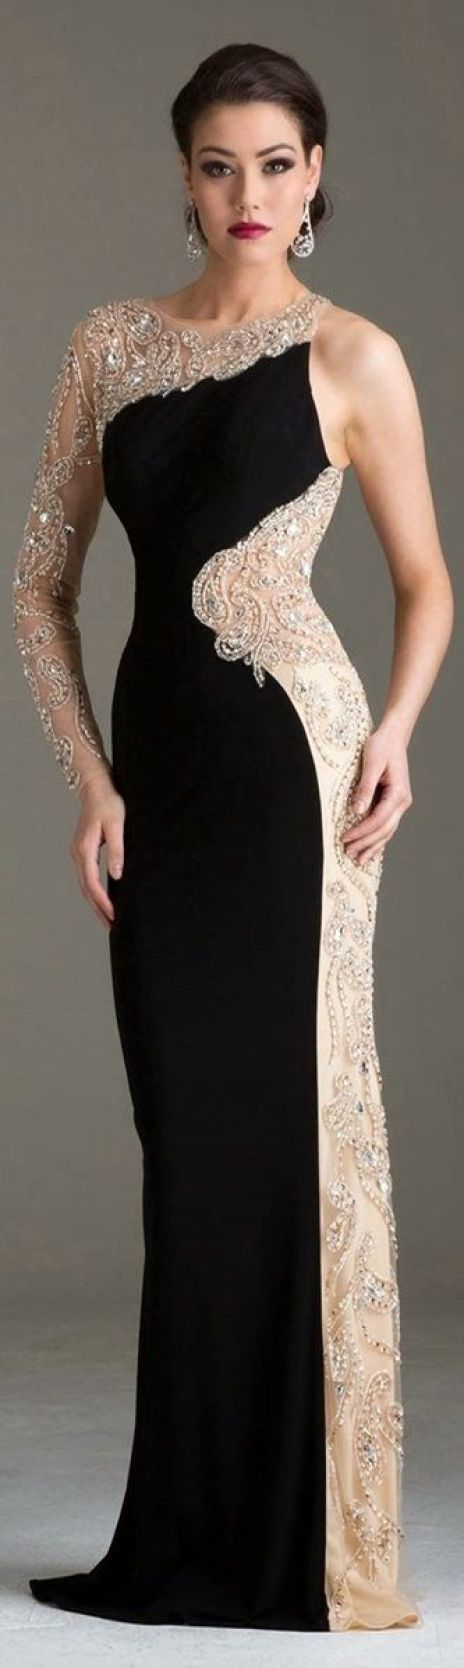 Evening Gown. #wedding #gown #dress: